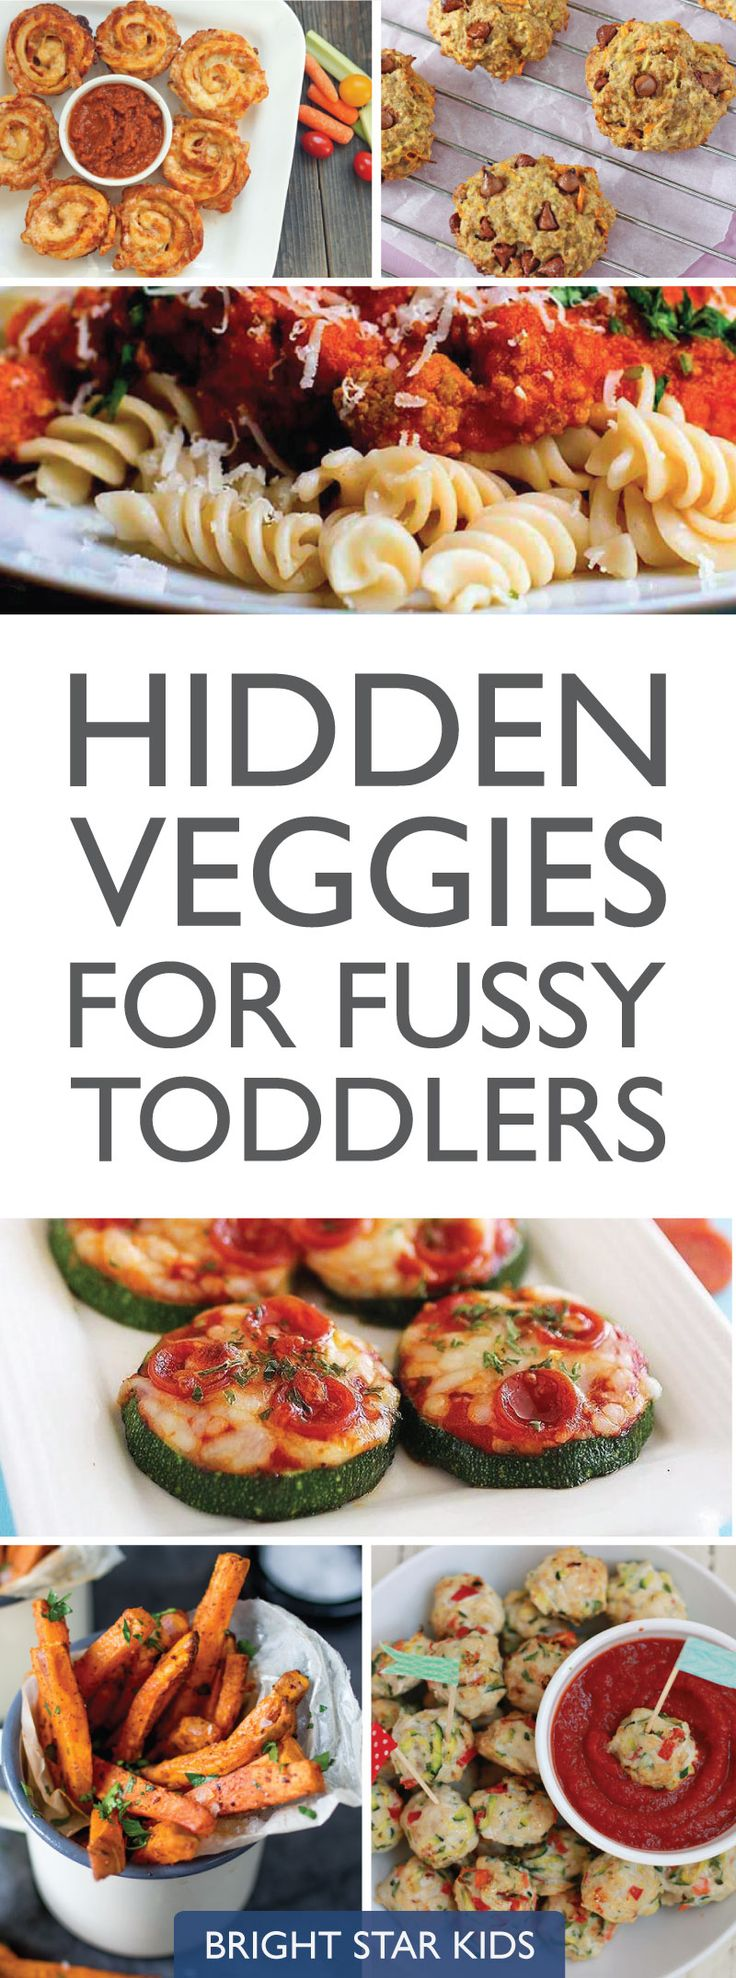 hidden veggies recipes for fussy toddlers